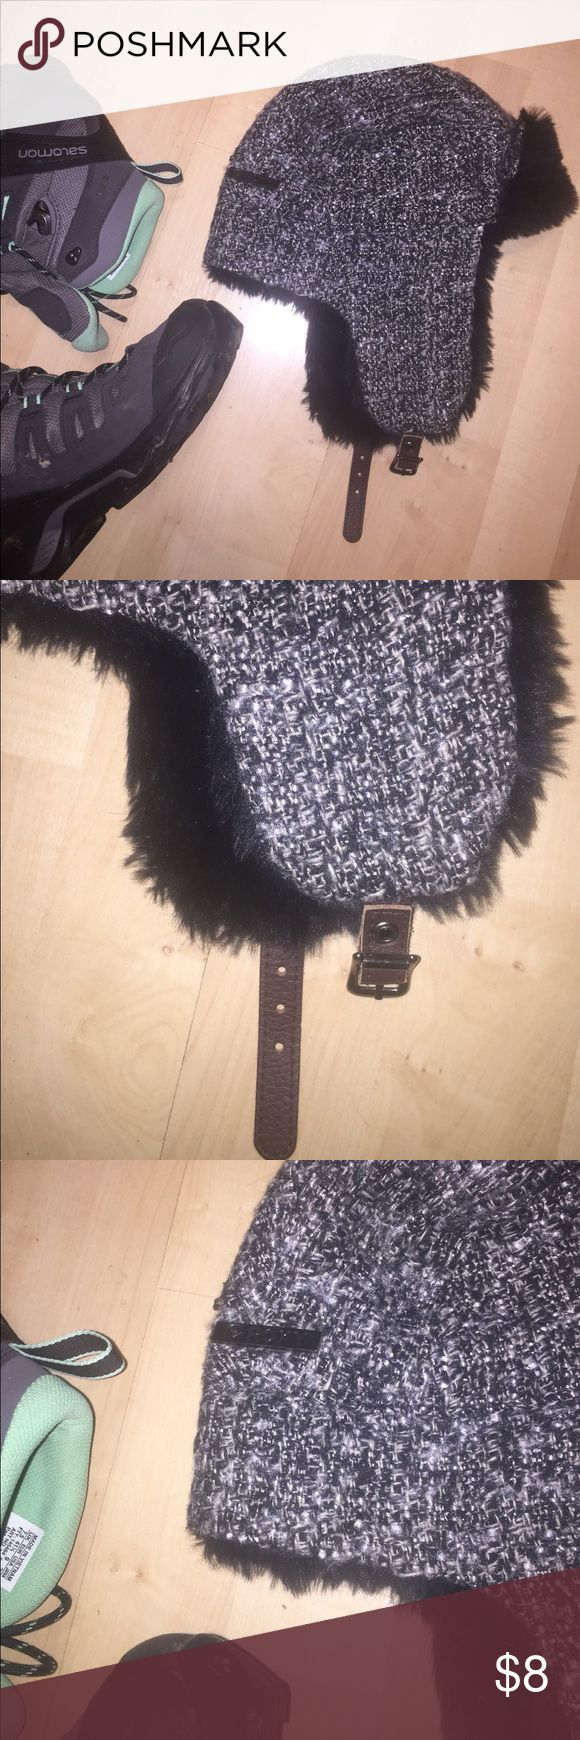 Roxy Lined Winter Hat Black and white knit outer shell with faux black fur inside. Ear flaps and brown faux leather buckle. Roxy Accessories Hats